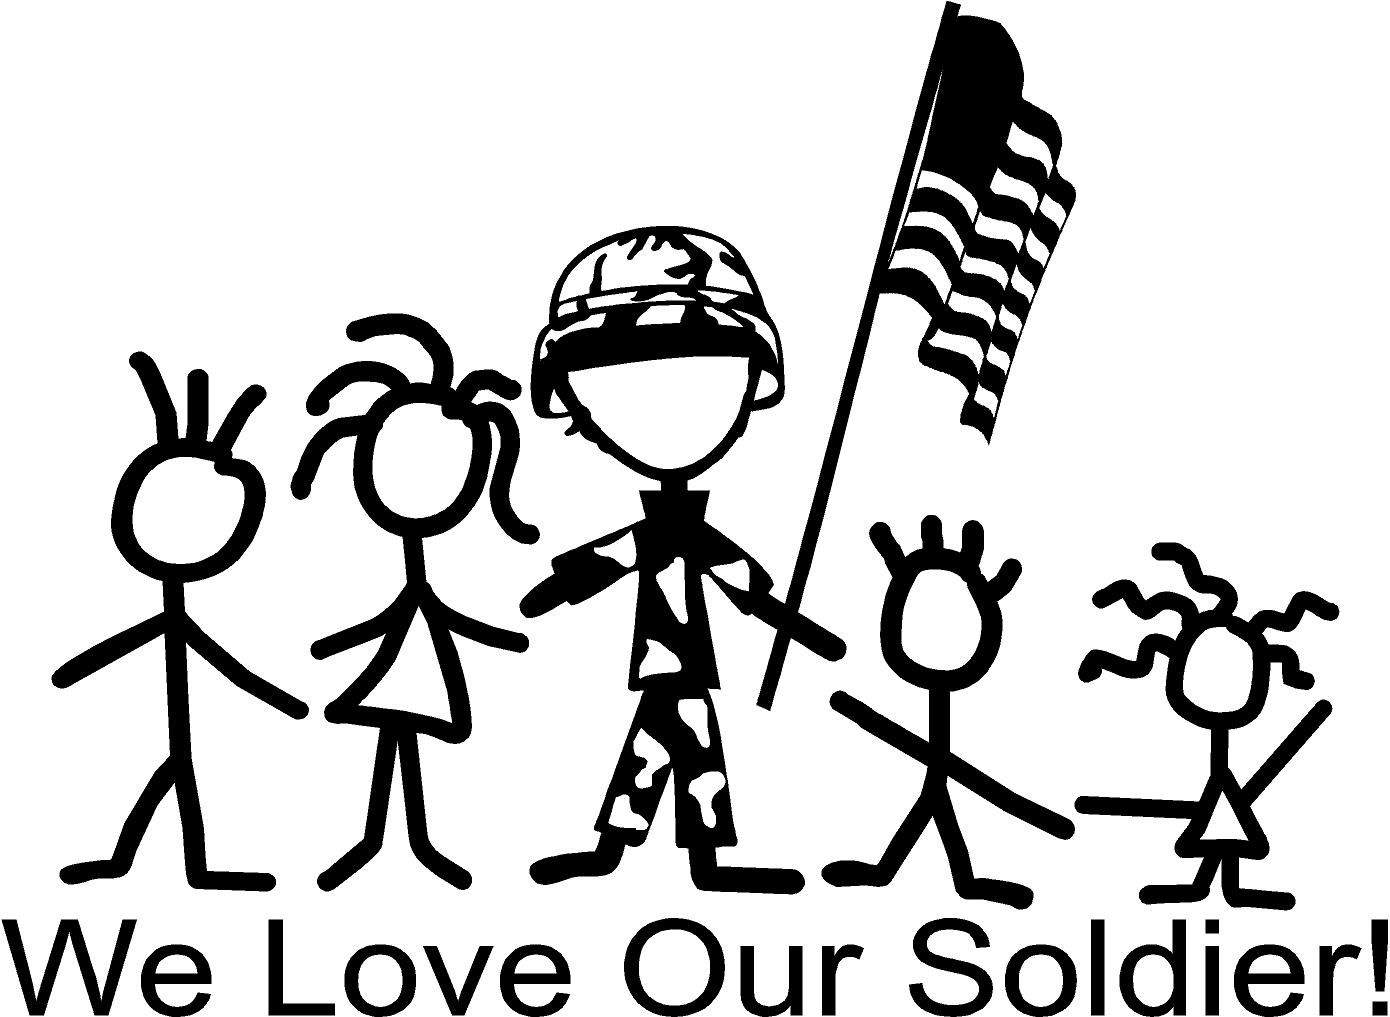 Create Your Own Stick Figure Family Choose From Many Themes Like Disney Dr Seuss Atv Fishing Scouts Police Stick Figure Family Stick Figures Heartfelt